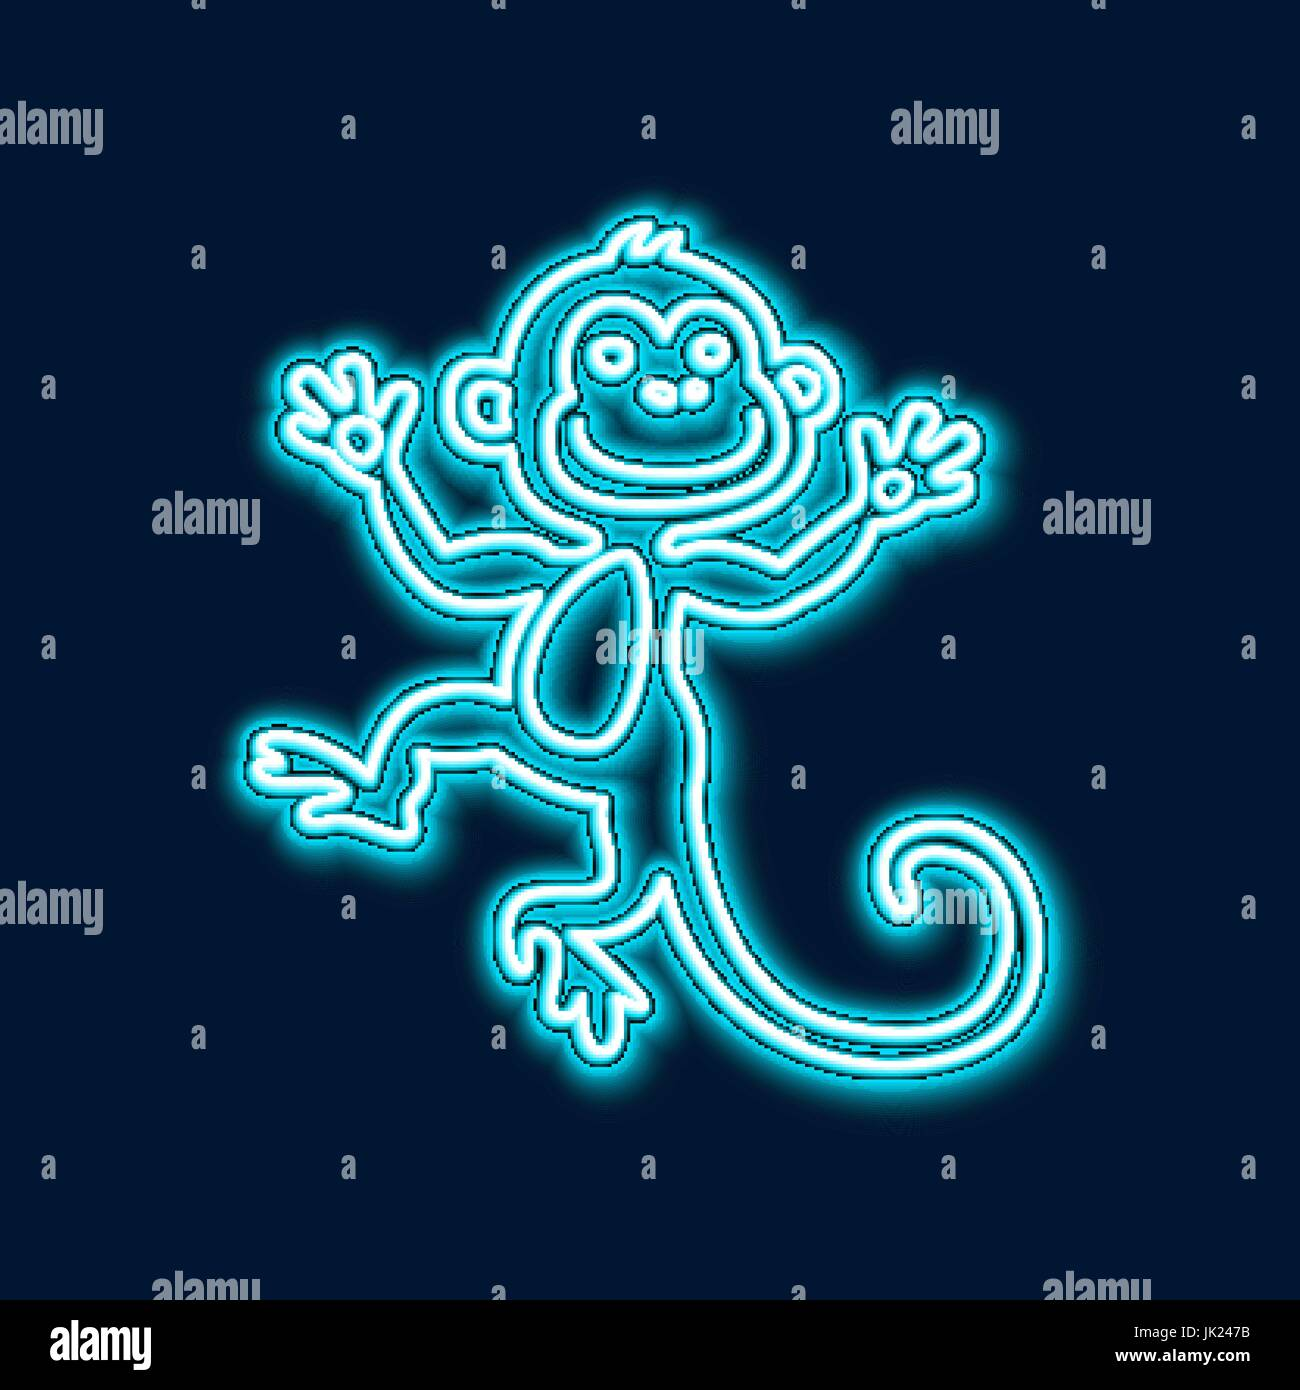 vector illustration of 2016 new year outline neon light background for design website banner holiday party element template chinese horoscope monk